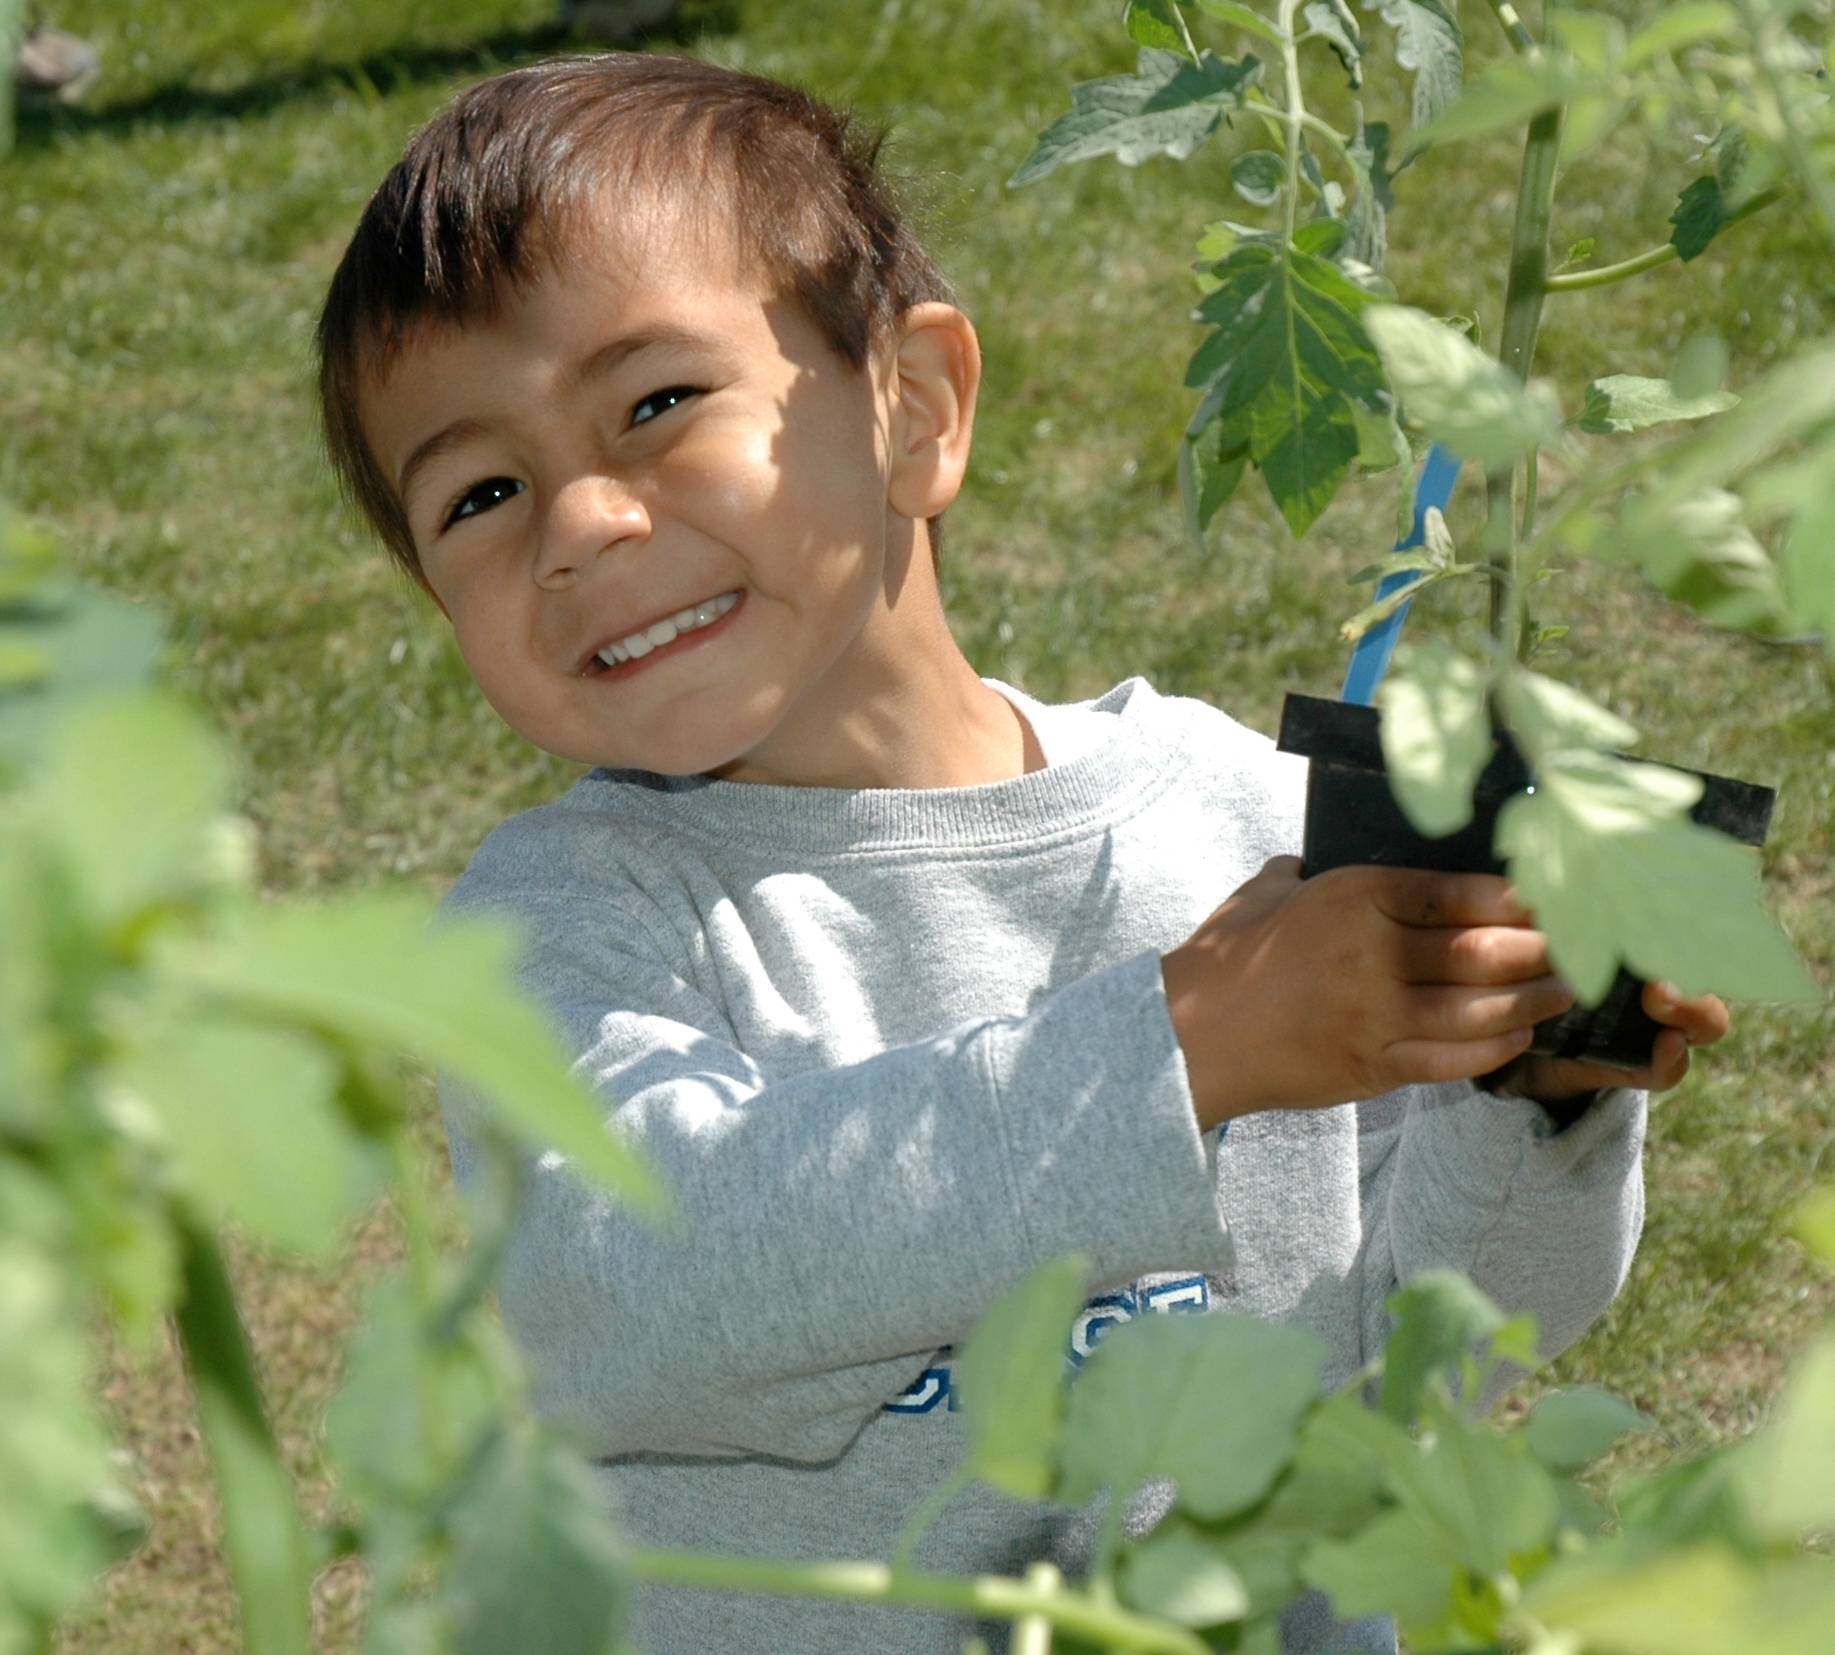 Nicholas Natarajan selects a tomato plant grown by the Prairie Crossing Learning Farm for his garden.